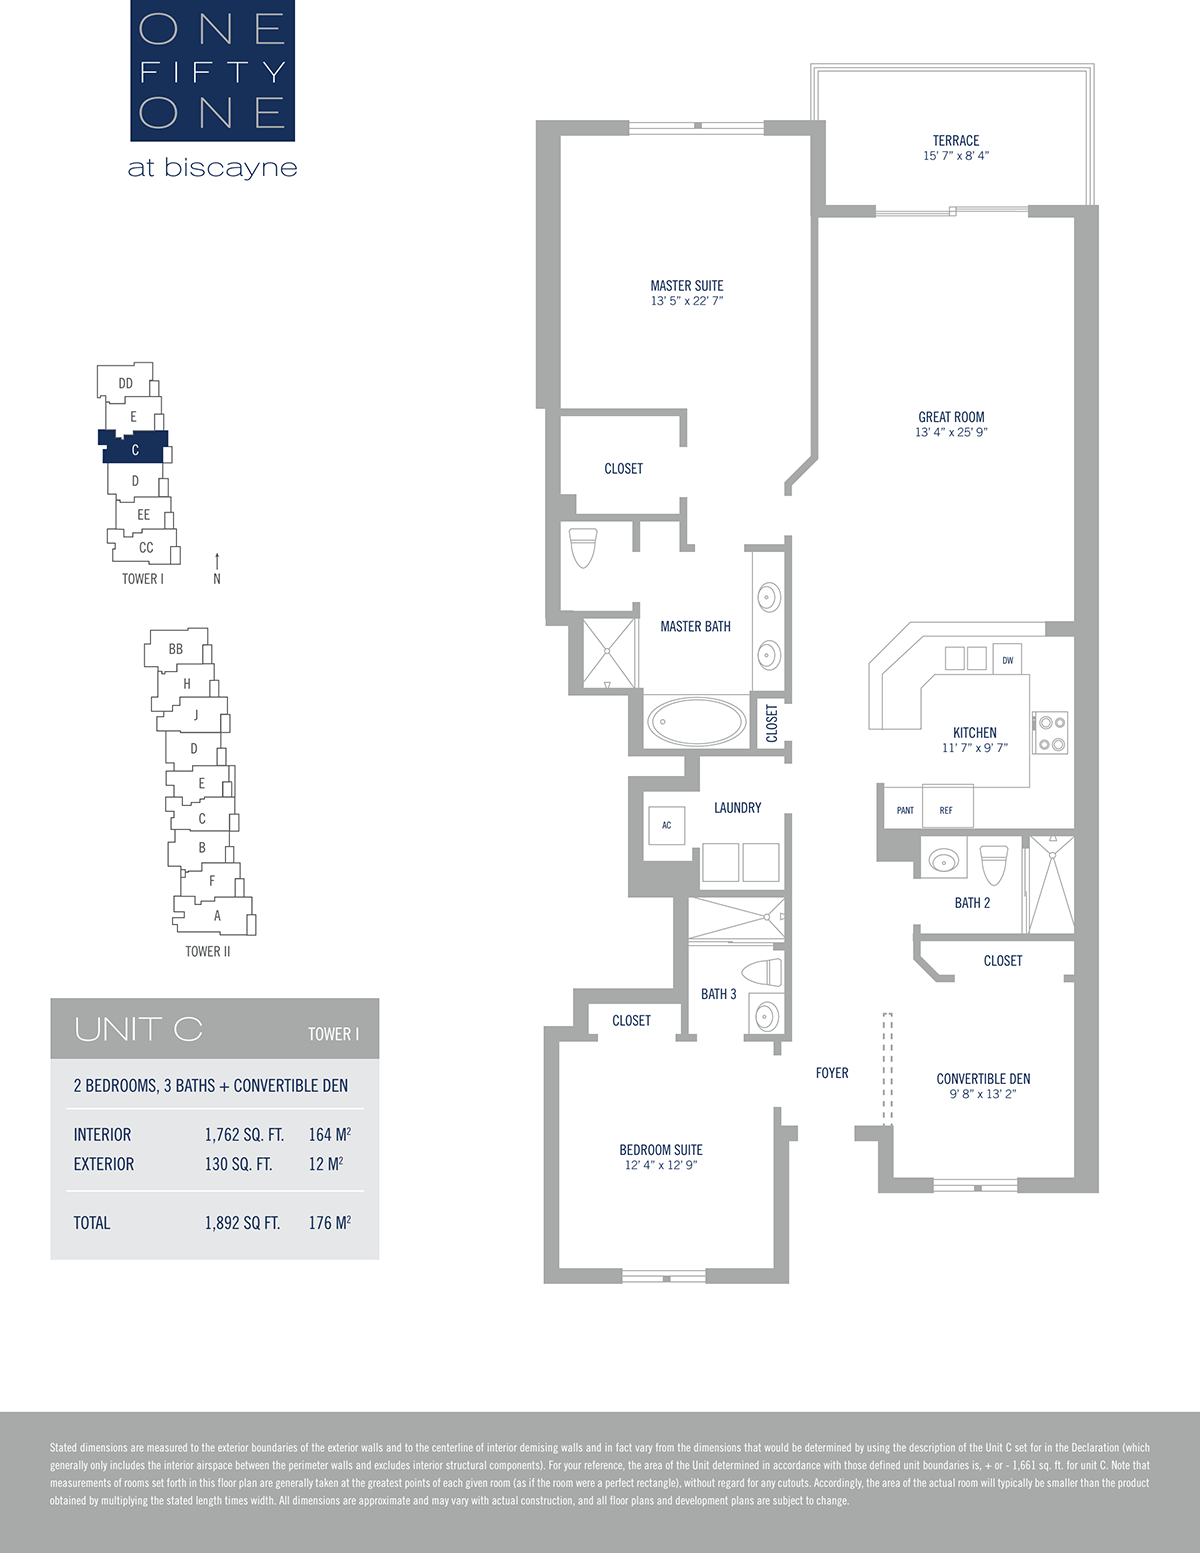 One Fifty One At Biscayne - Floorplan 11